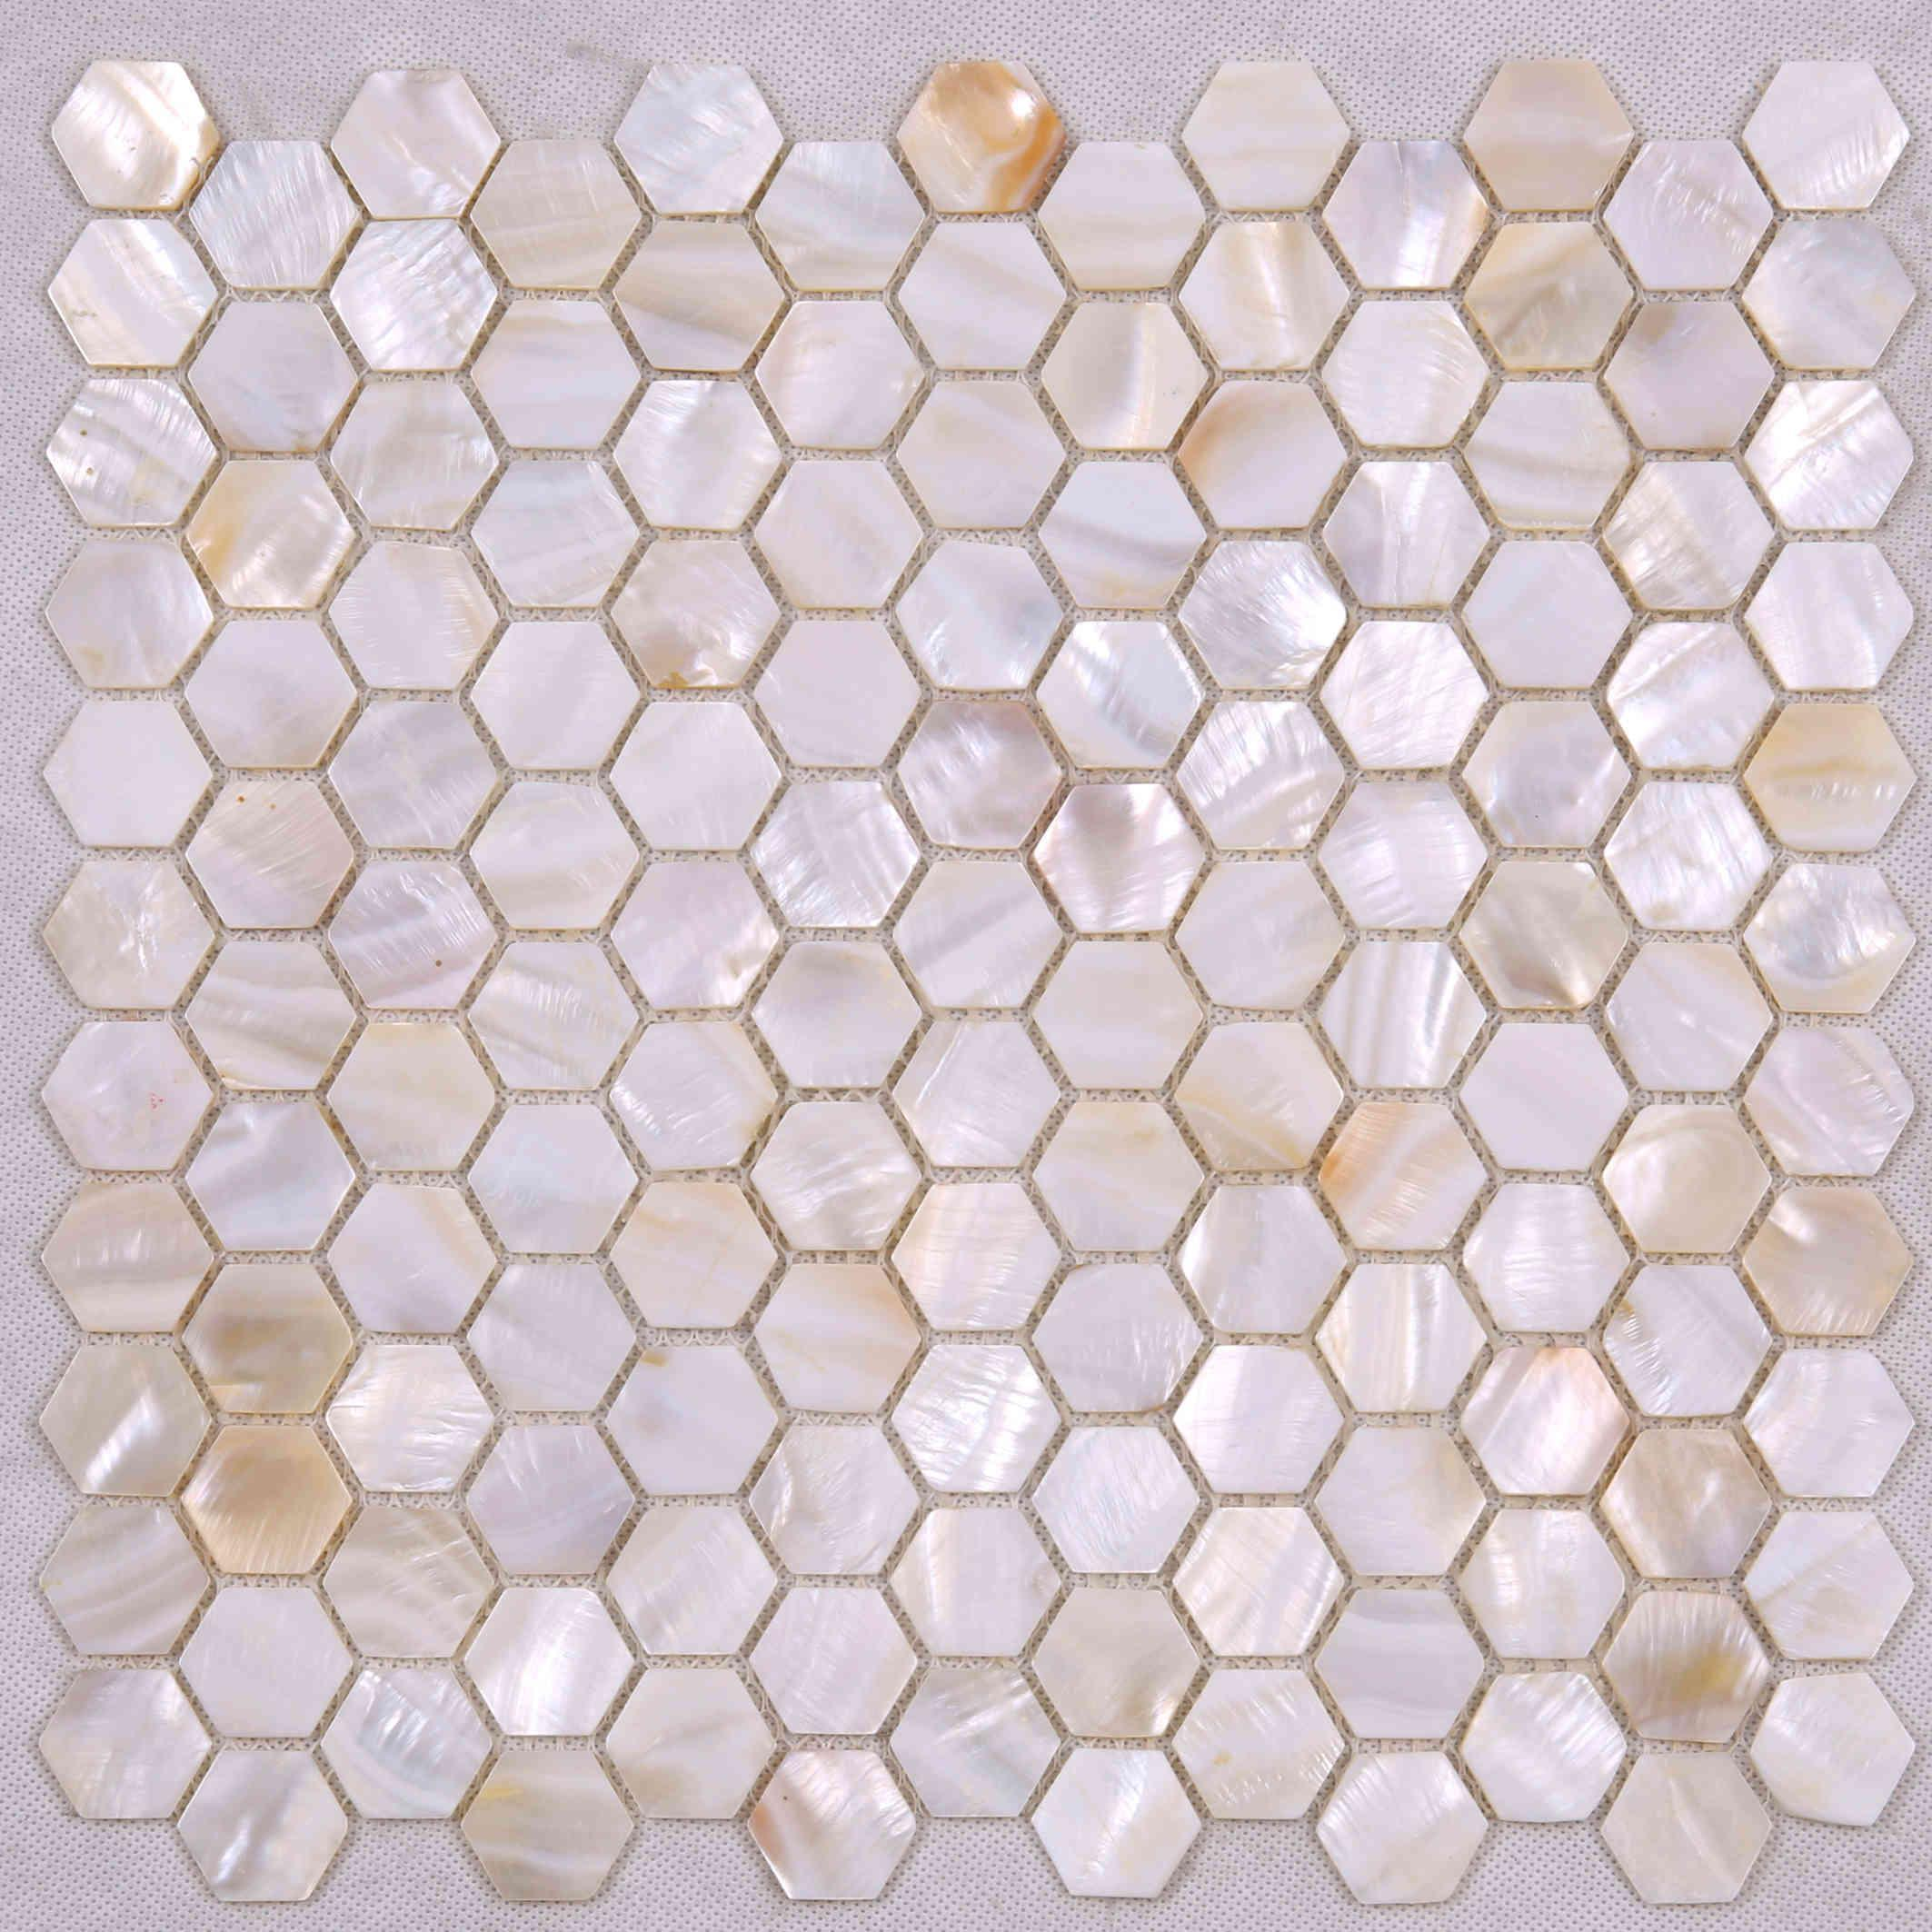 Heng Xing High-quality shell mosaic Suppliers-1